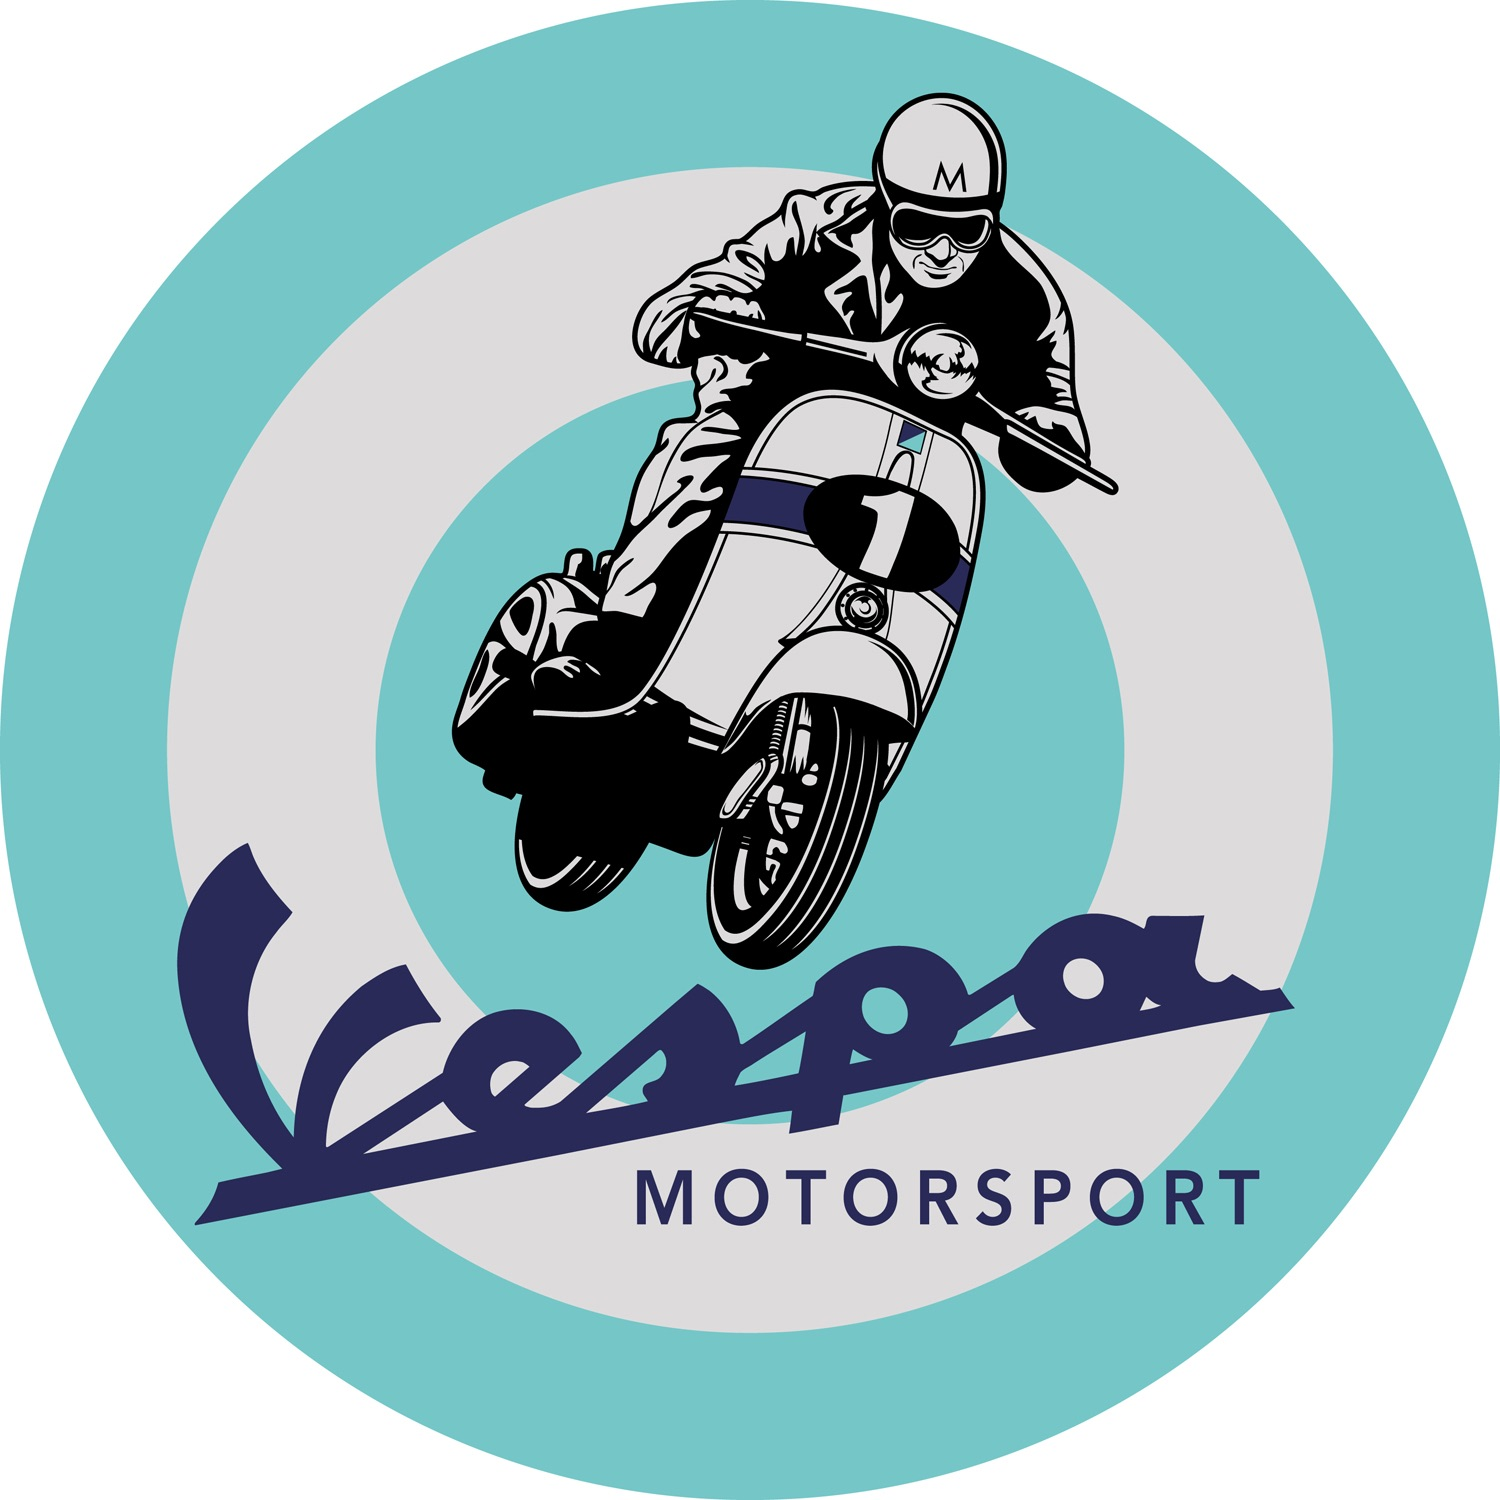 Vespa Motorsport Podcast